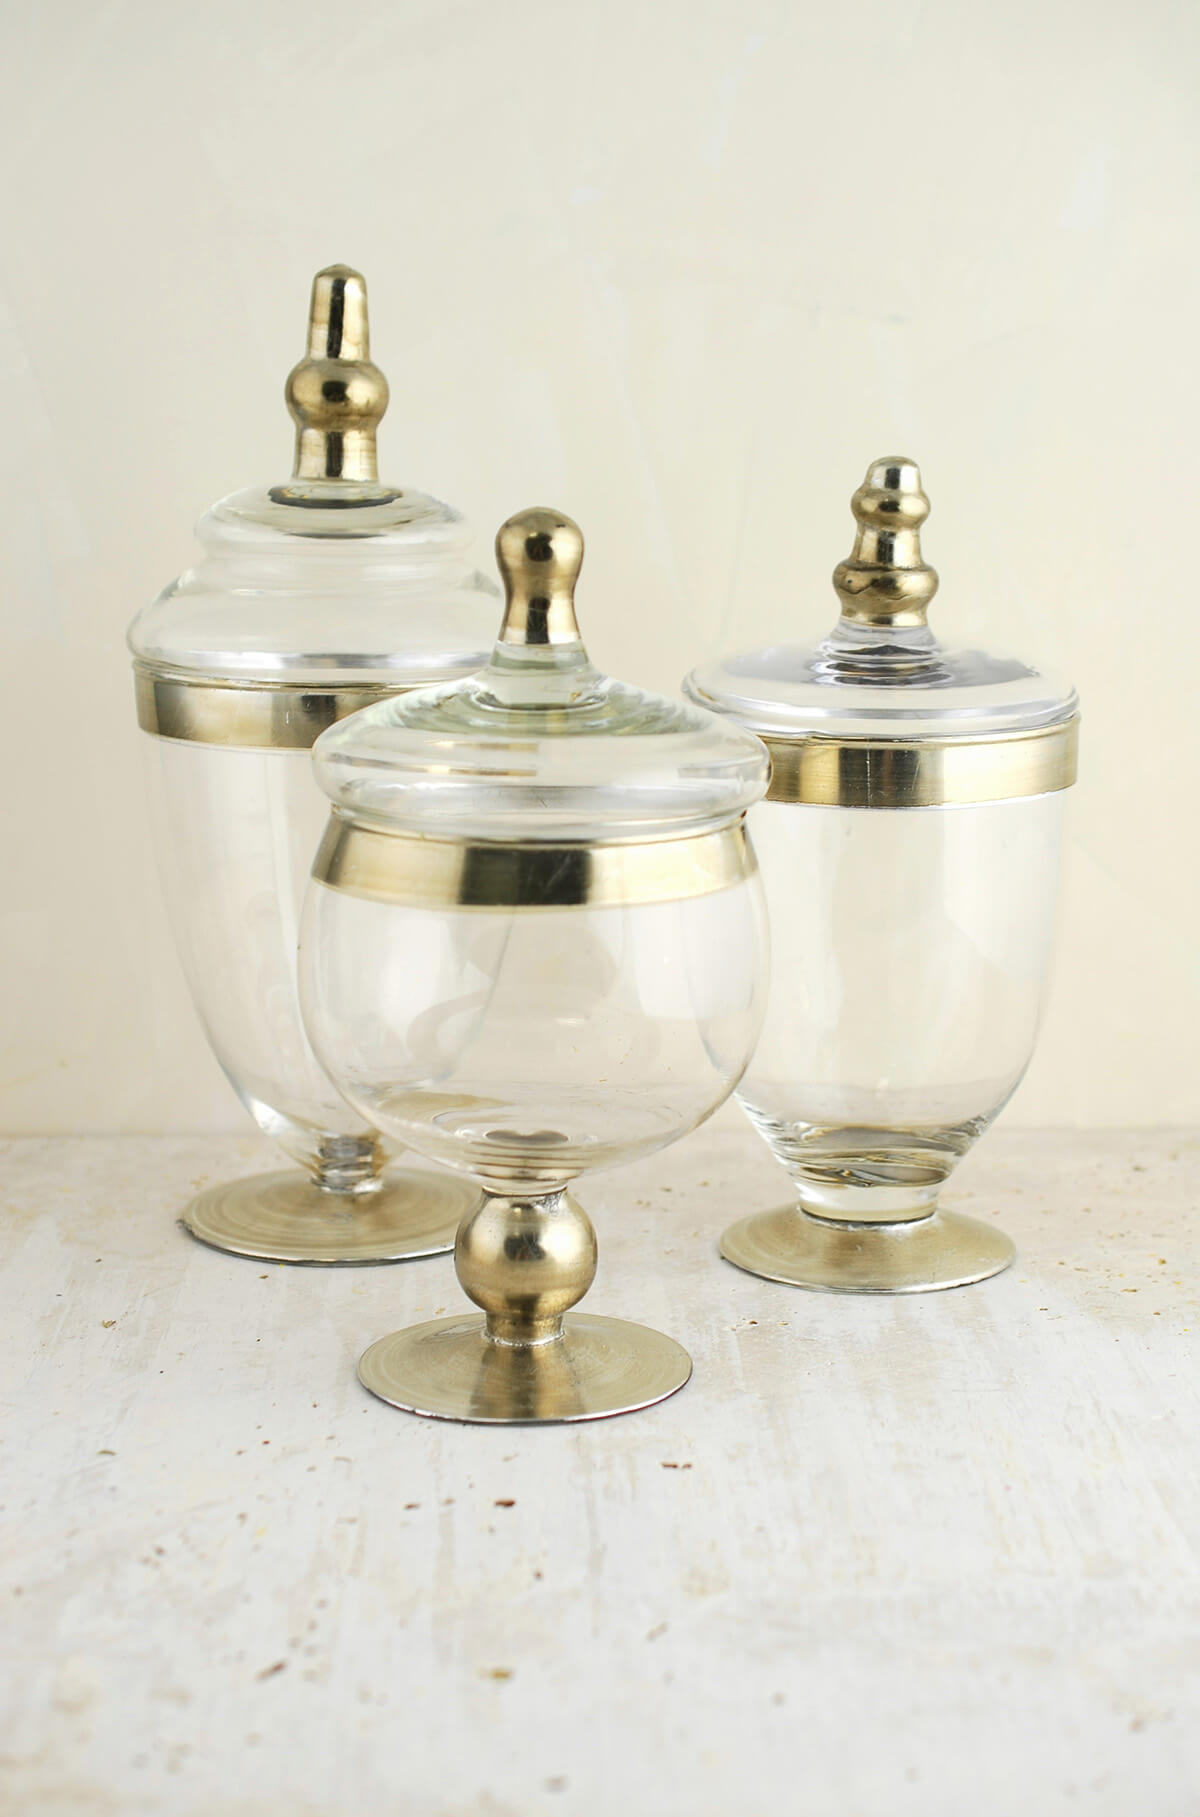 Greatest Apothecary Jars|Largest selection|SaveOnCrafts JN86